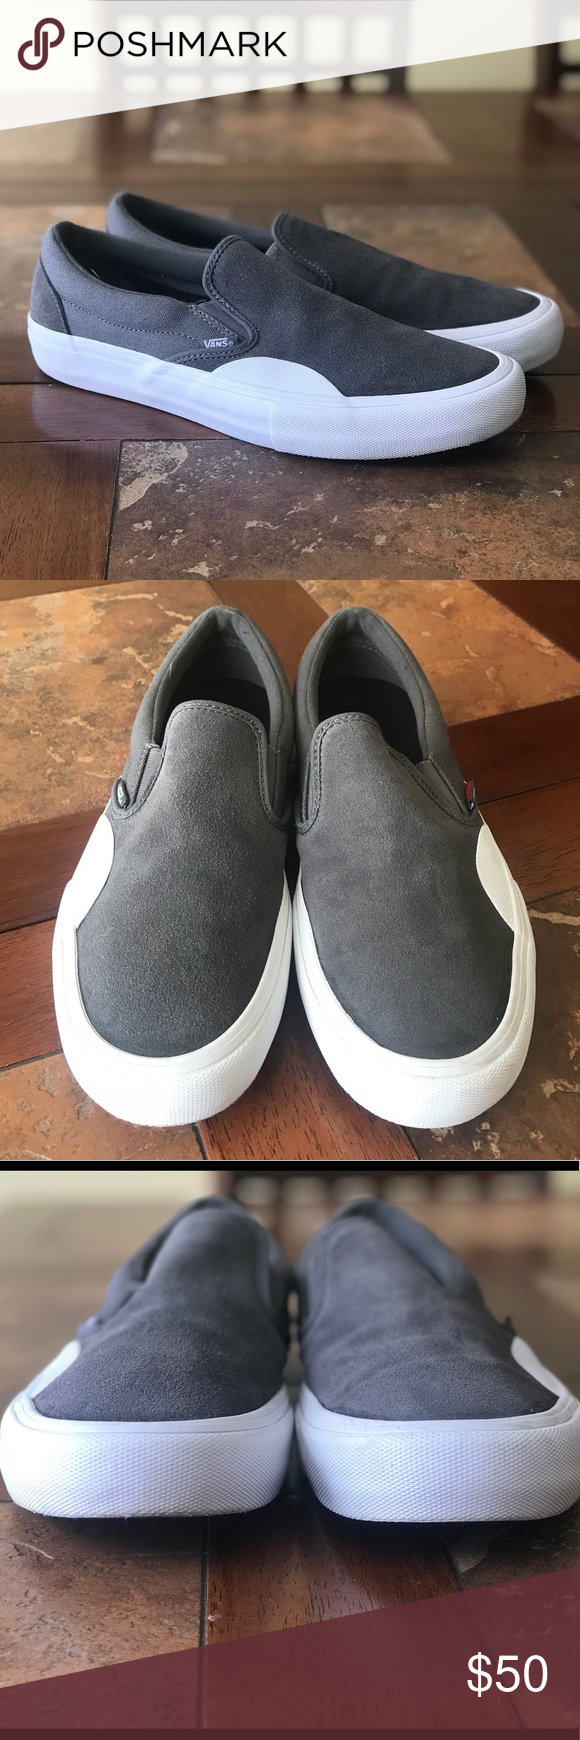 d5e5f0ebe89 Men s VANS Ultra Cush pro shoes Grey suede slip on vans - super soft foot  bed - worn before but show no signs of ware Vans Shoes Sneakers